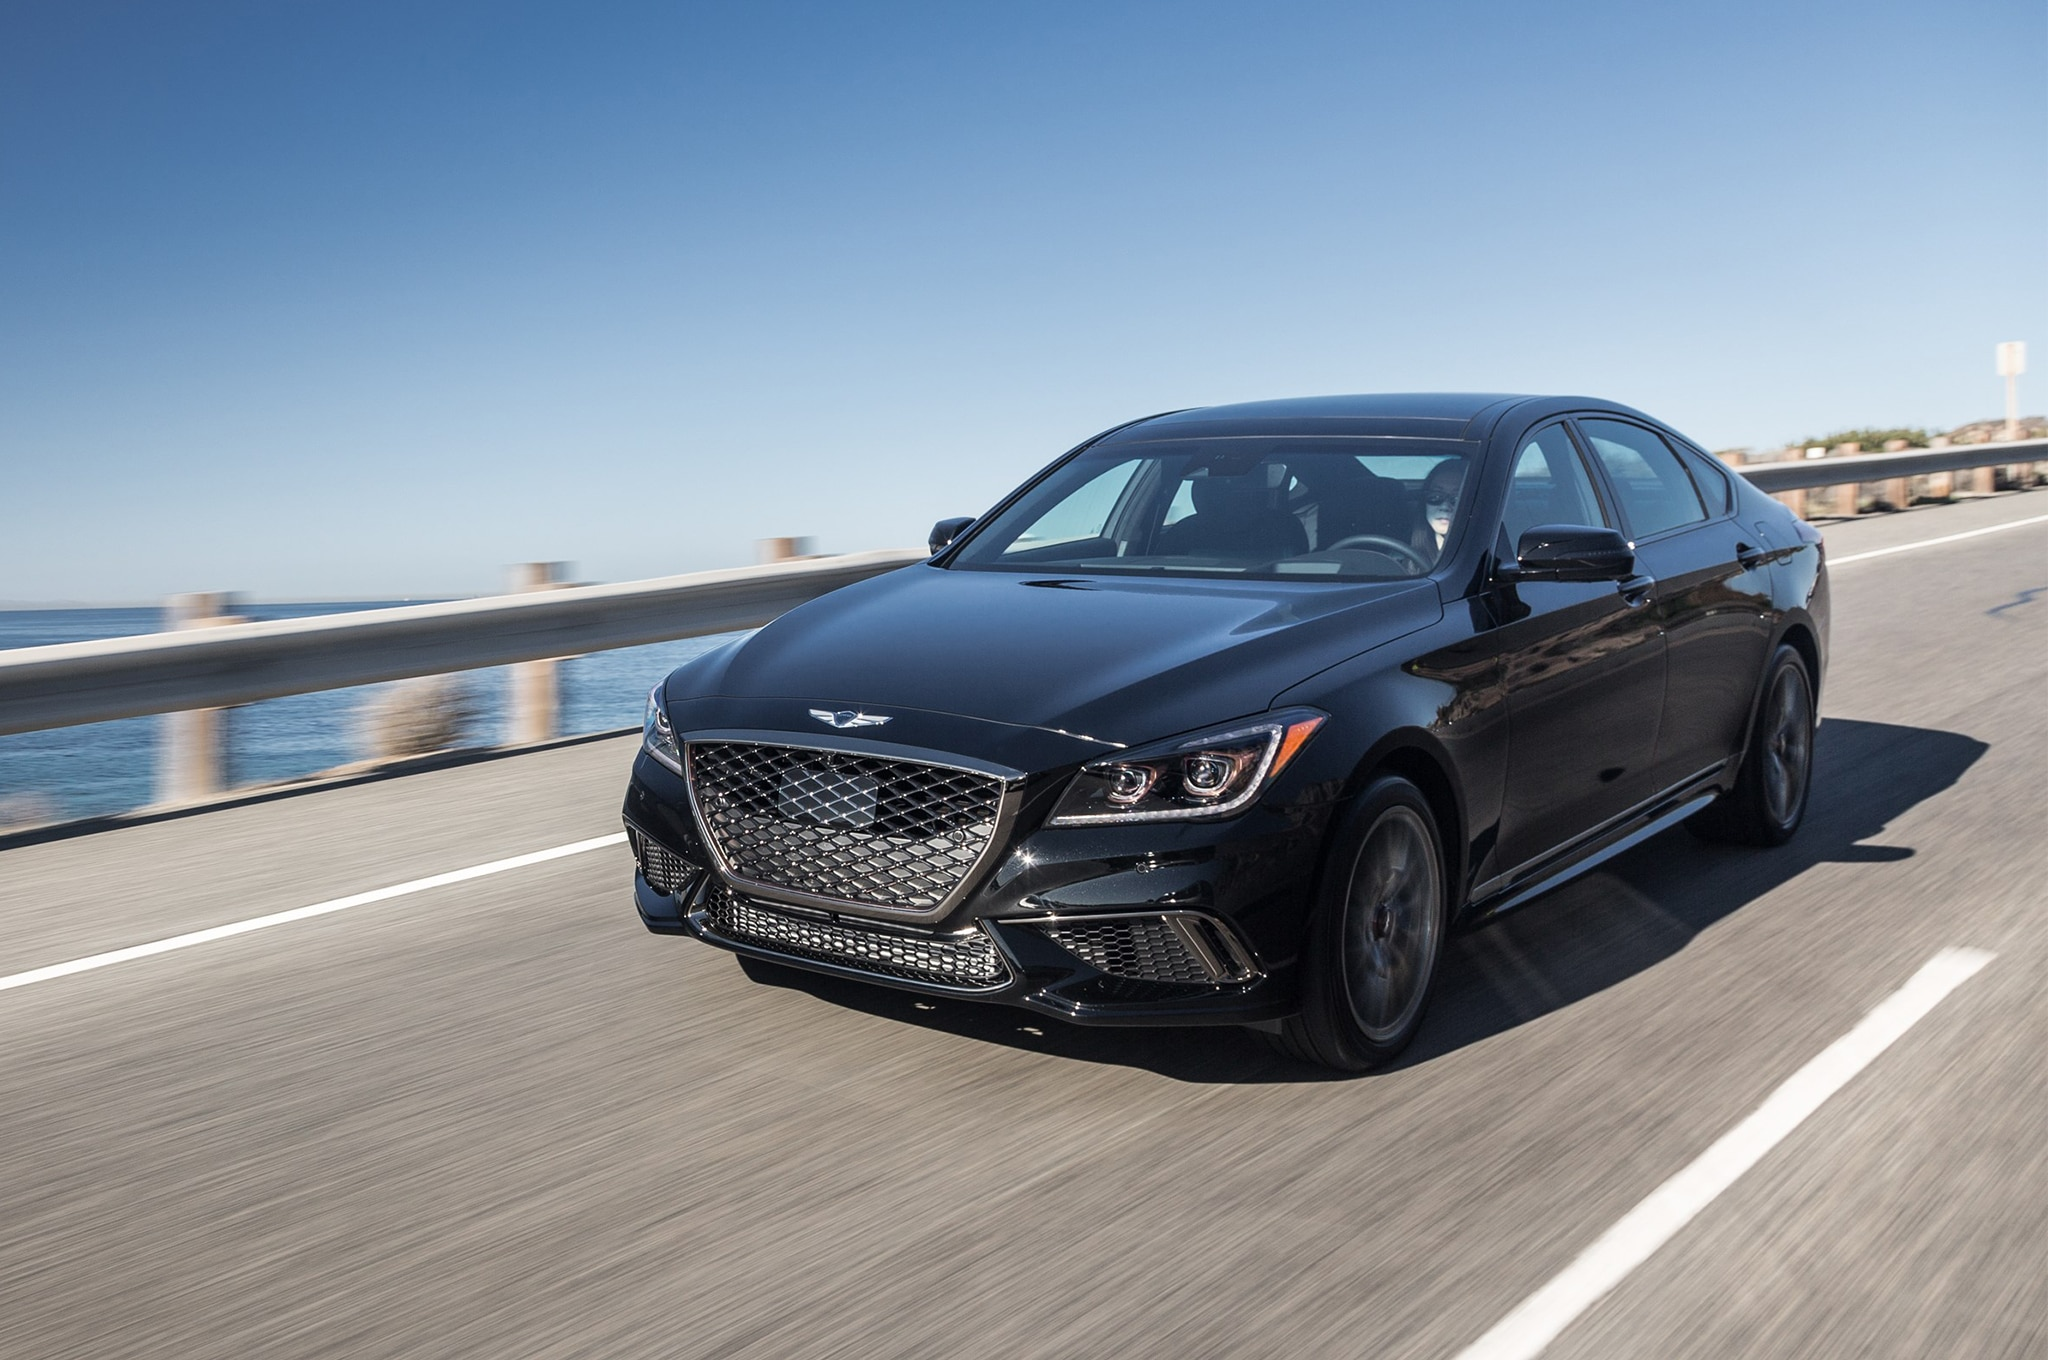 2018 genesis g80 starts at 42 725 3 3t sport priced from 56 225 automobile magazine. Black Bedroom Furniture Sets. Home Design Ideas